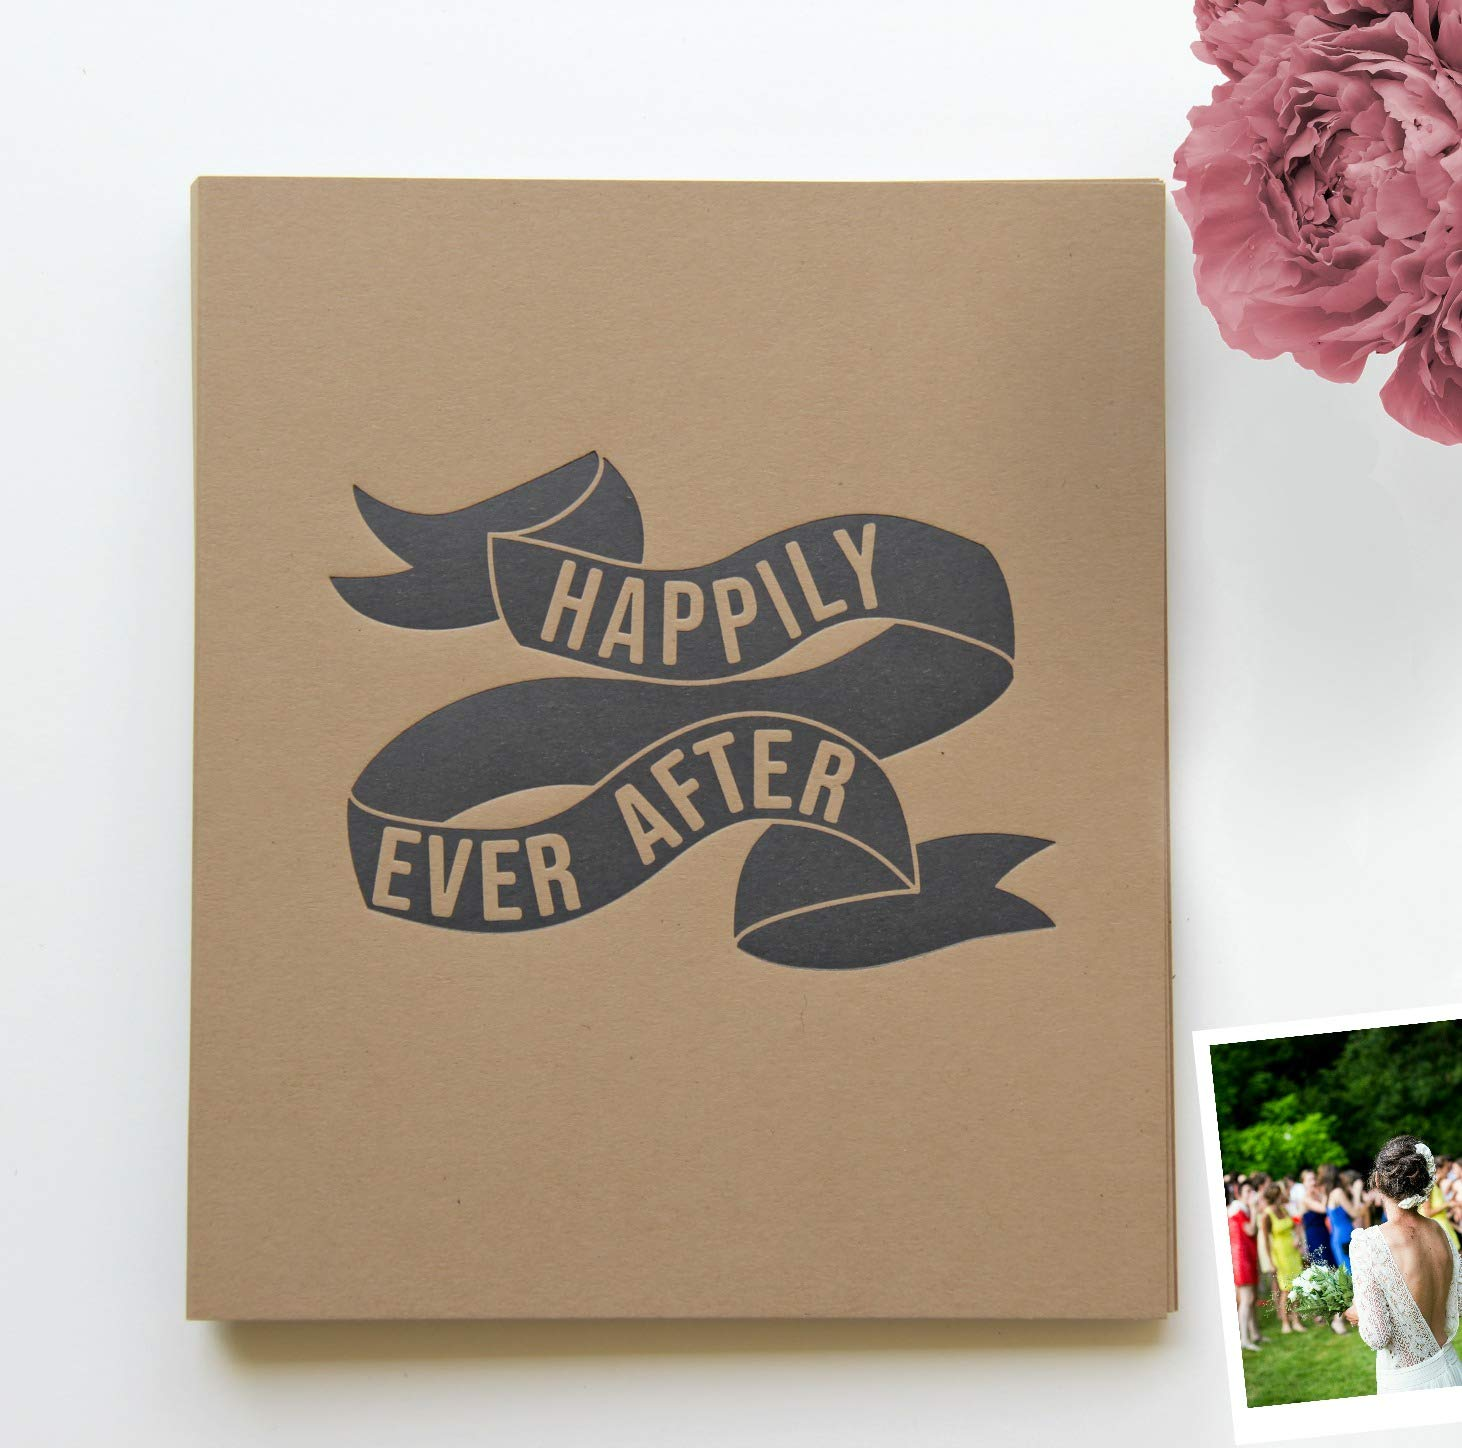 Wedding Guest Book Rustic Guestbook Alternative   130 pgs   Photo Booth Album   For Wedding Advice Cards, Date Idea Cards, Rustic Wedding Guest Book Photo Guest Book Outdoor Wedding Decorations,Kraft